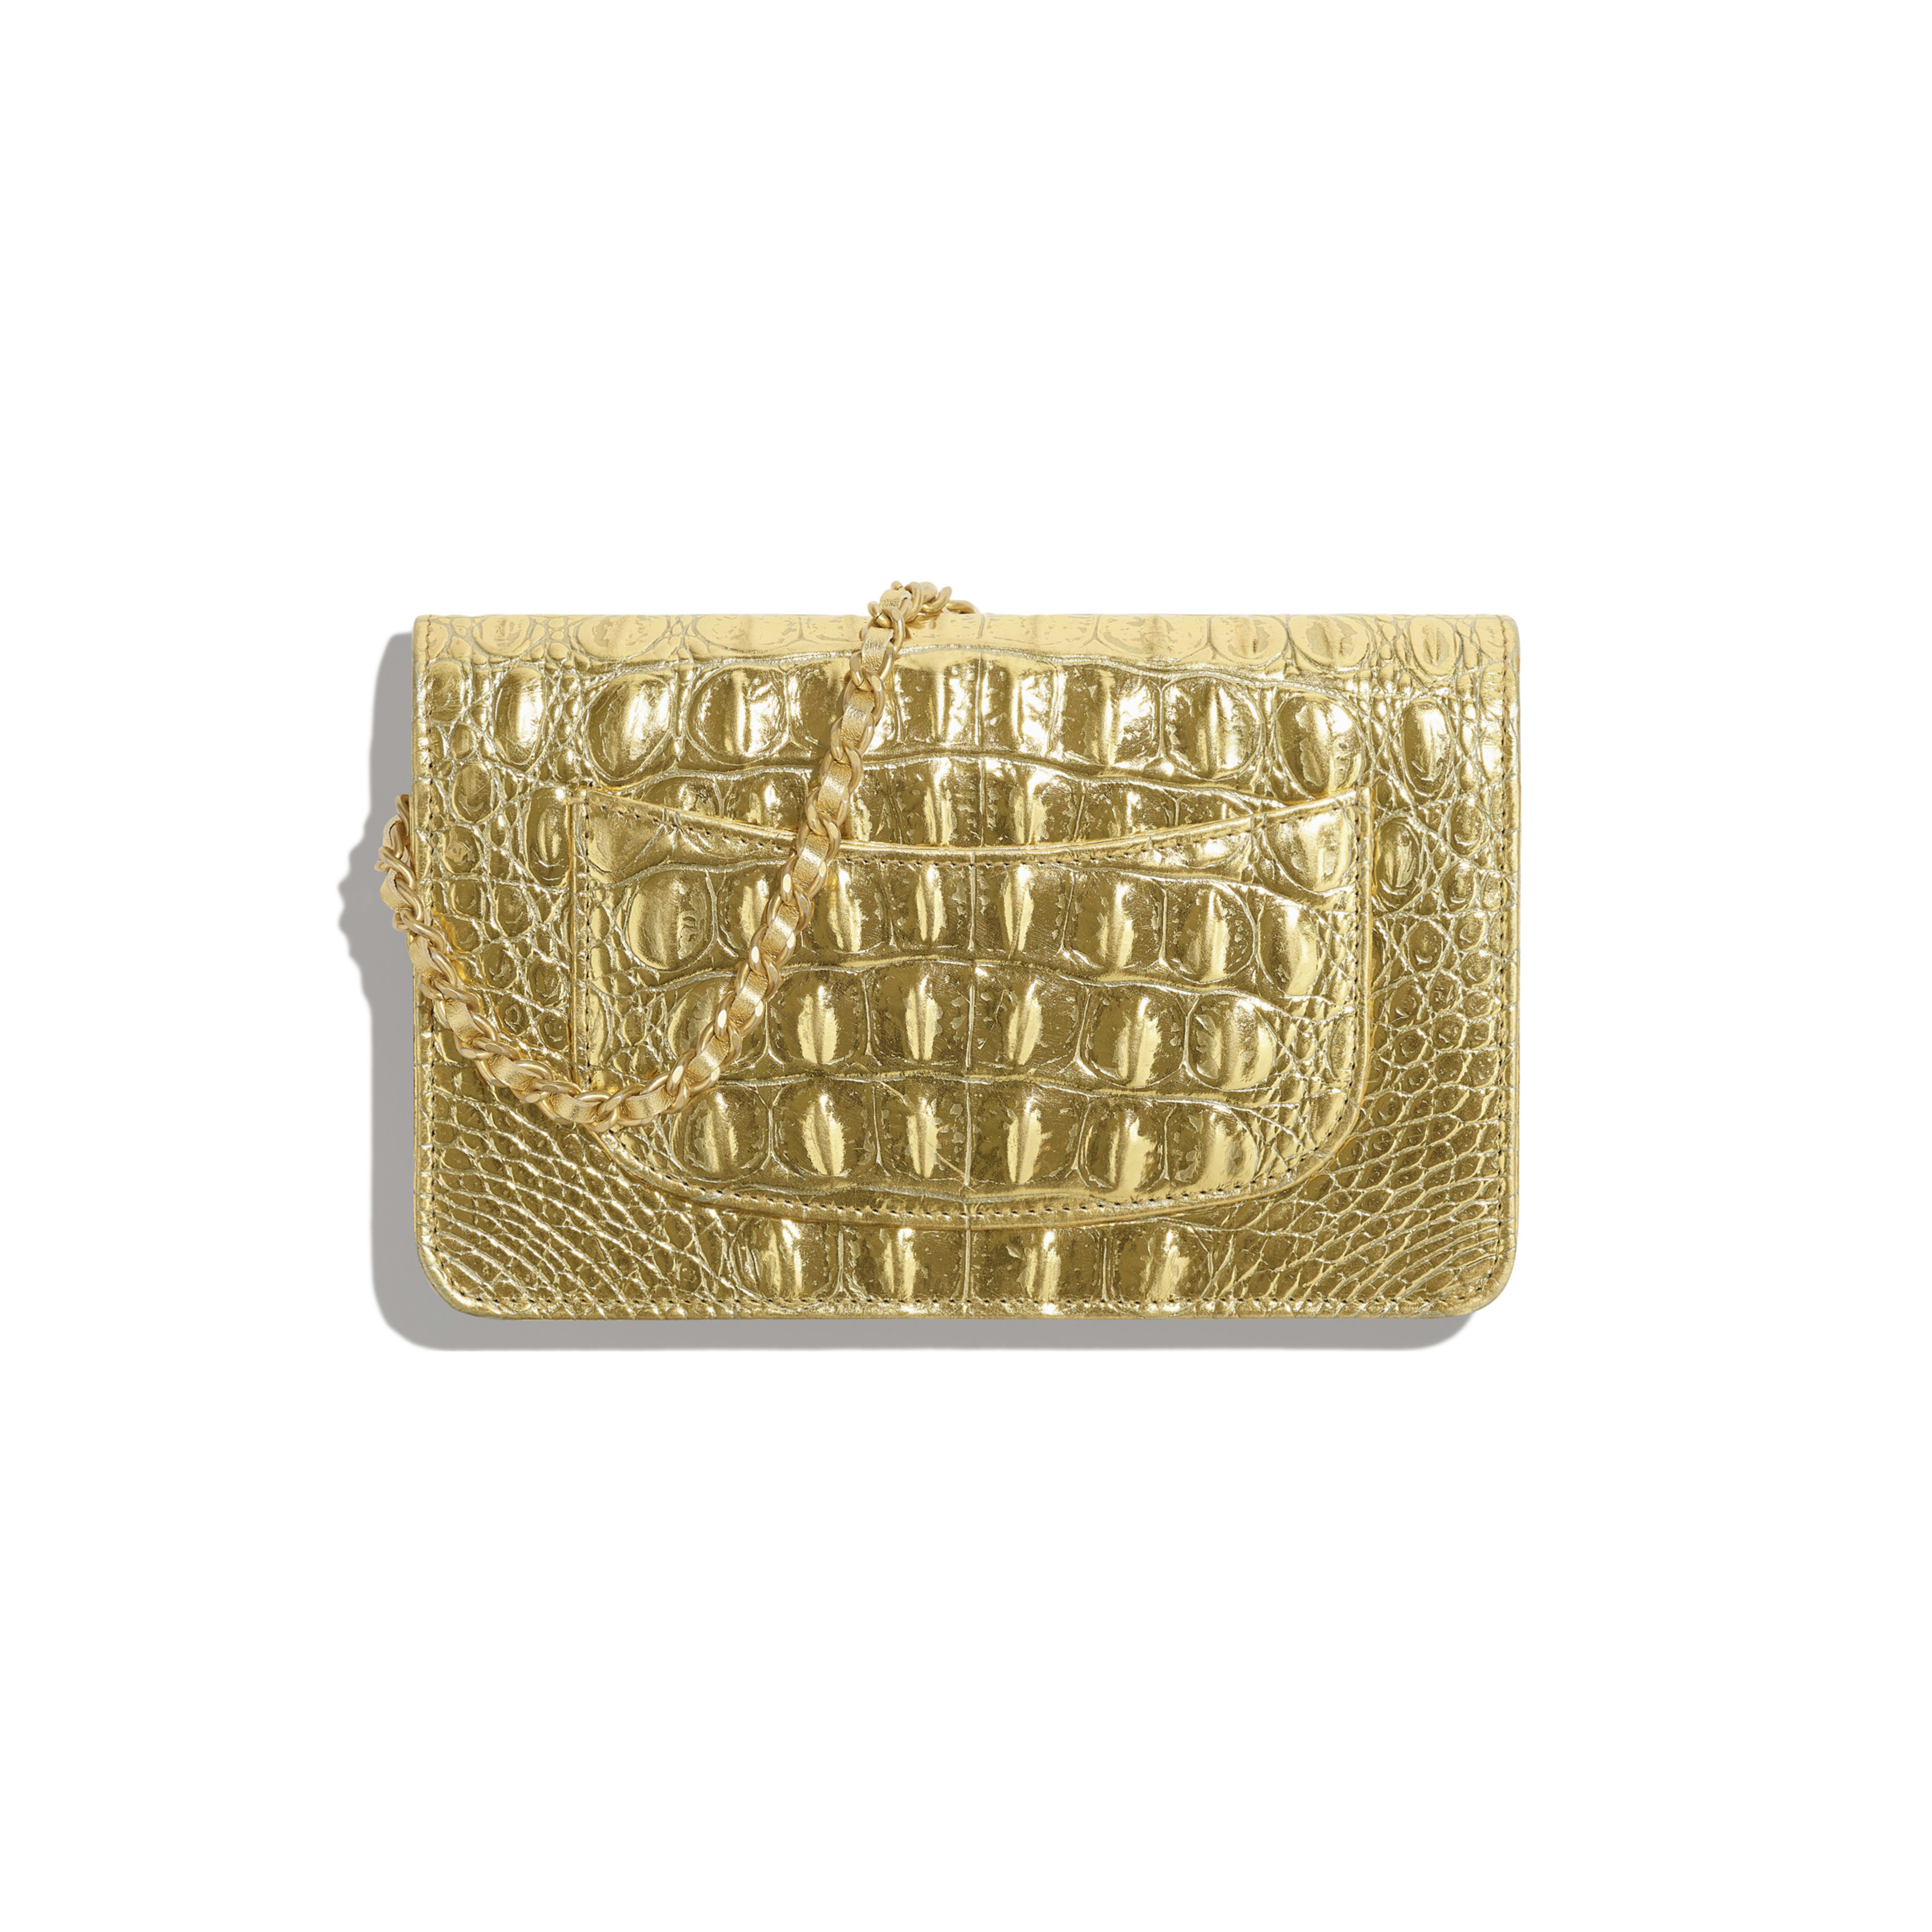 Classic Wallet on Chain - Gold - Metallic Crocodile Embossed Calfskin & Gold Metal - Alternative view - see full sized version